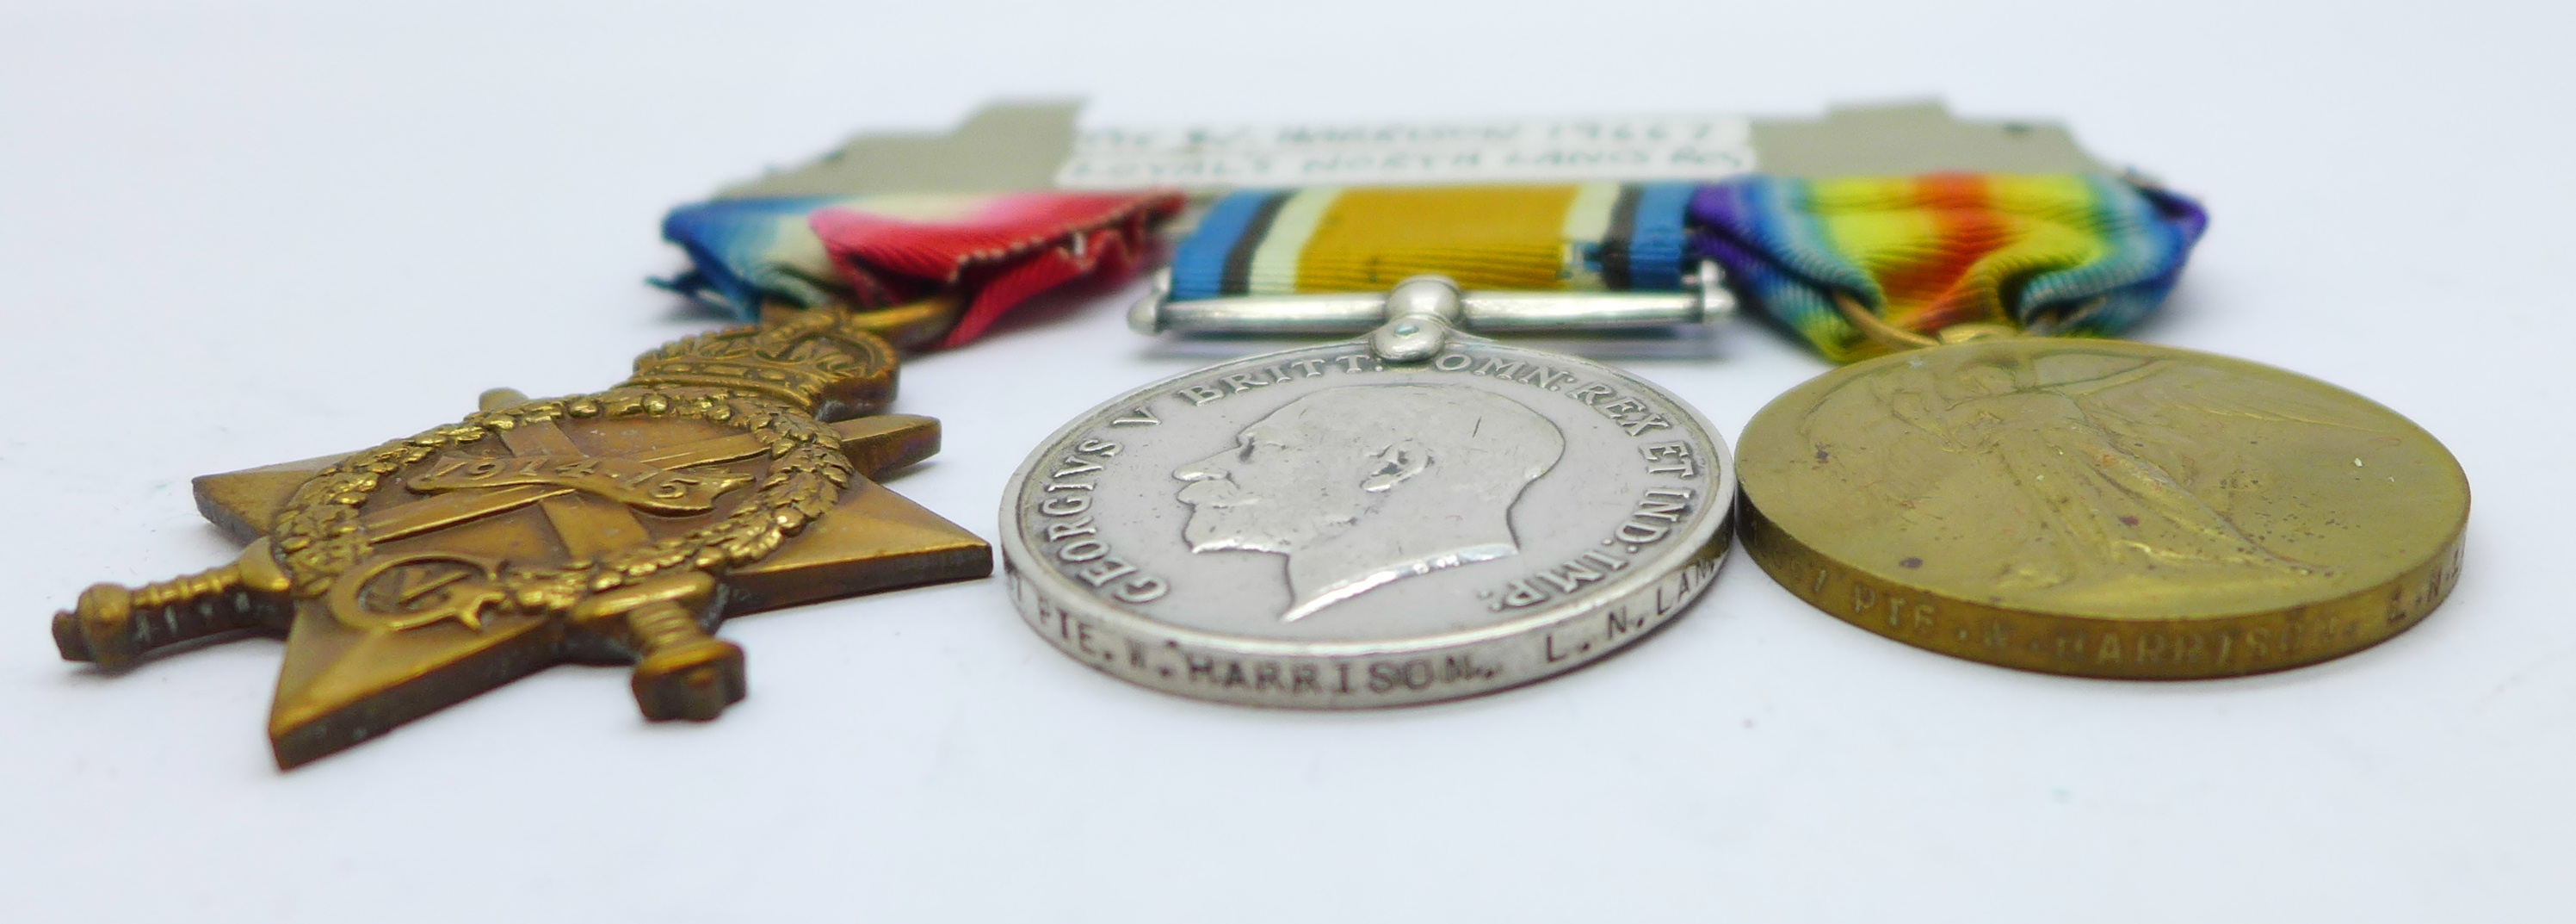 A trio of WWI medals to 19667 Pte. W. Harrison. L. N. Lan. R. - Image 3 of 3